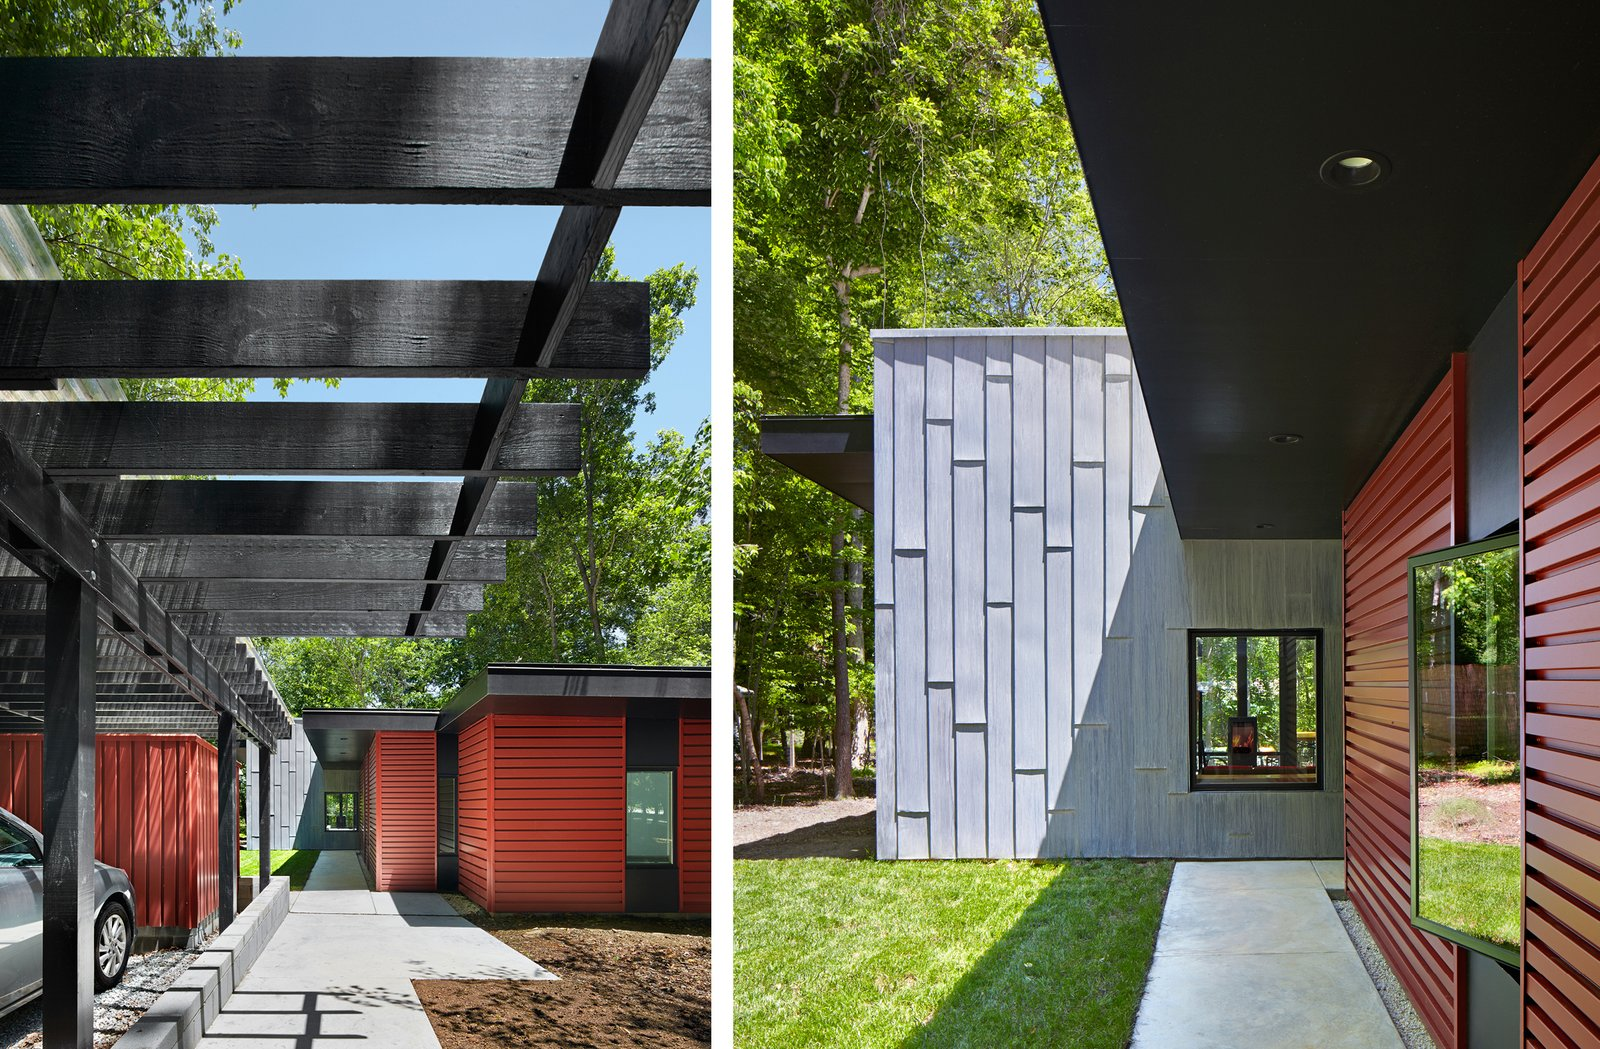 The horizontal orientation of the cement board, painted black, creates a line of vision that leads to the forest, while its deep overhangs help shield the sun. A small lawn, gravel, and native grass weave the wooded setting in the residence's landscape design. This Light-Filled, Metallic Home Embraces Its Wooded Site - Photo 3 of 8